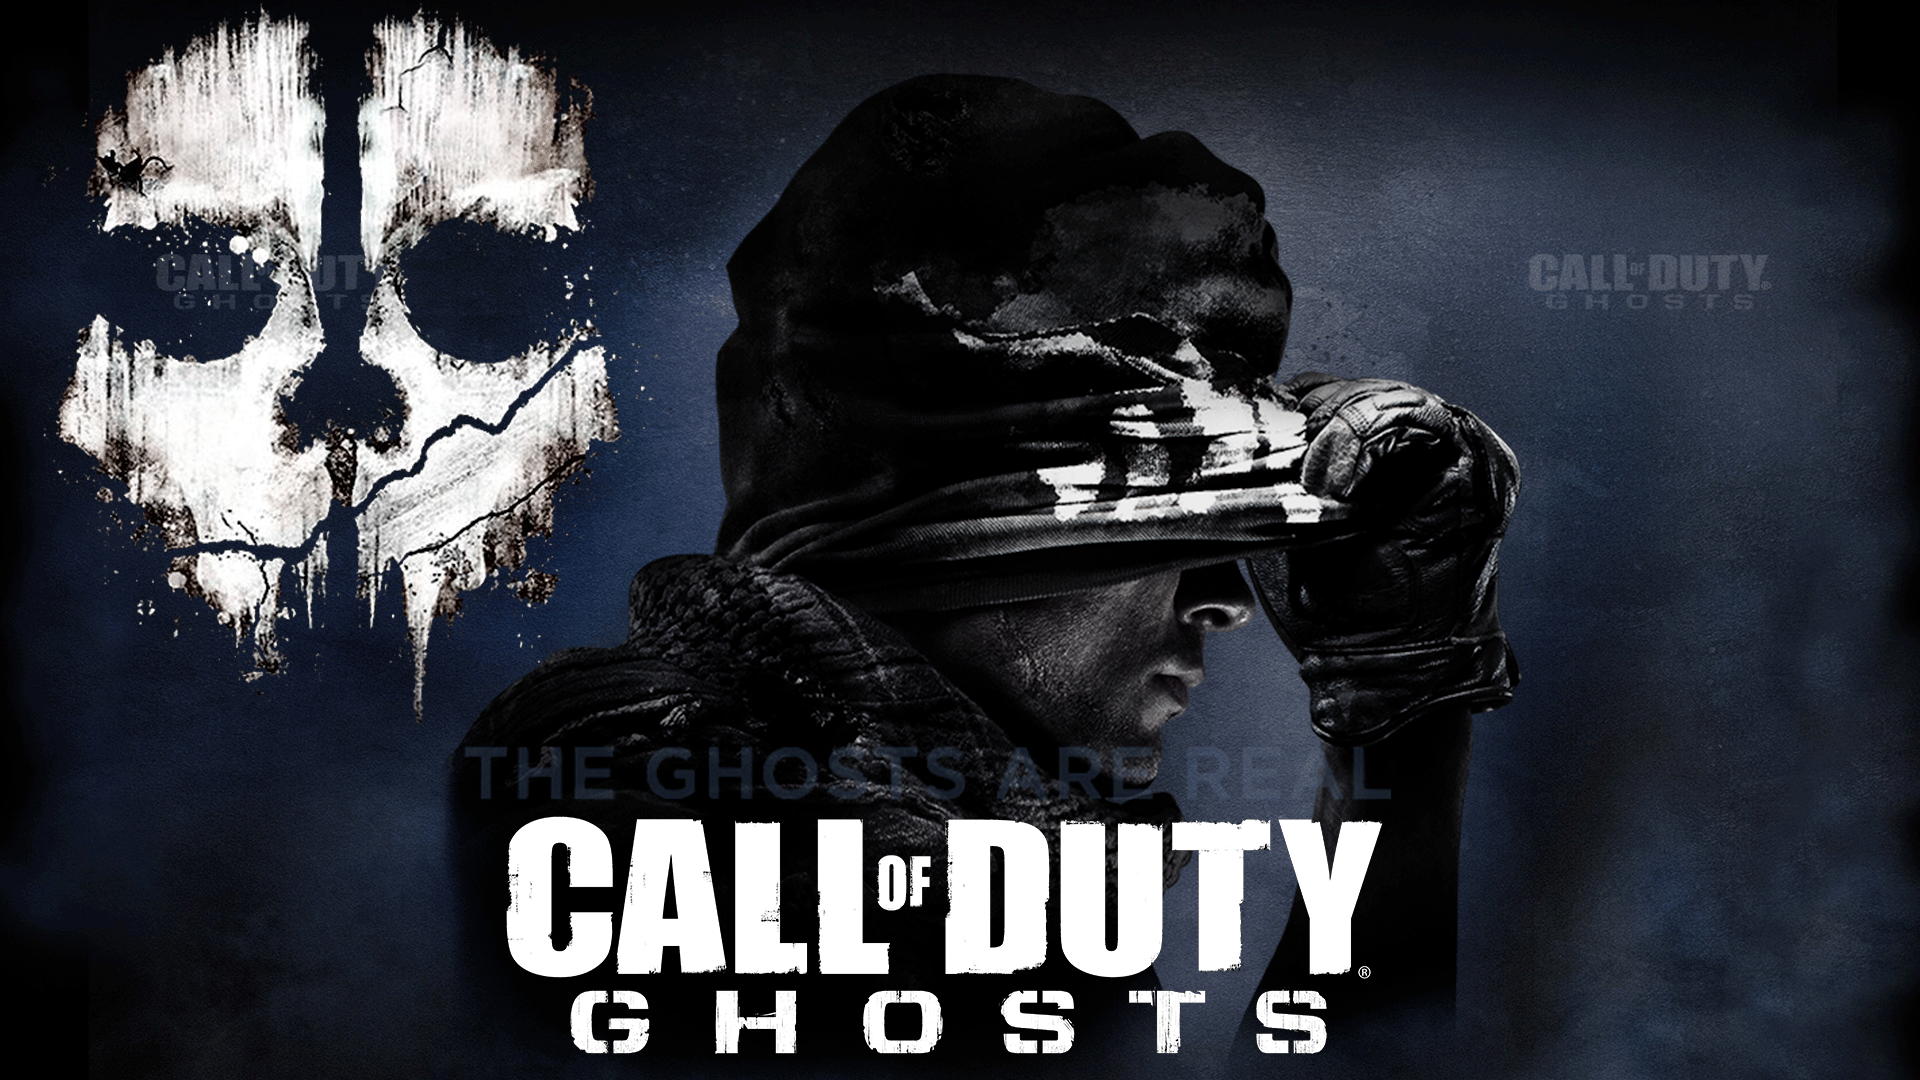 Call-of-Duty-Ghosts-is-a-first-person-shooter-video-game-developed-by-Infinity-Ward-with-assistanc-wallpaper-wp3603850